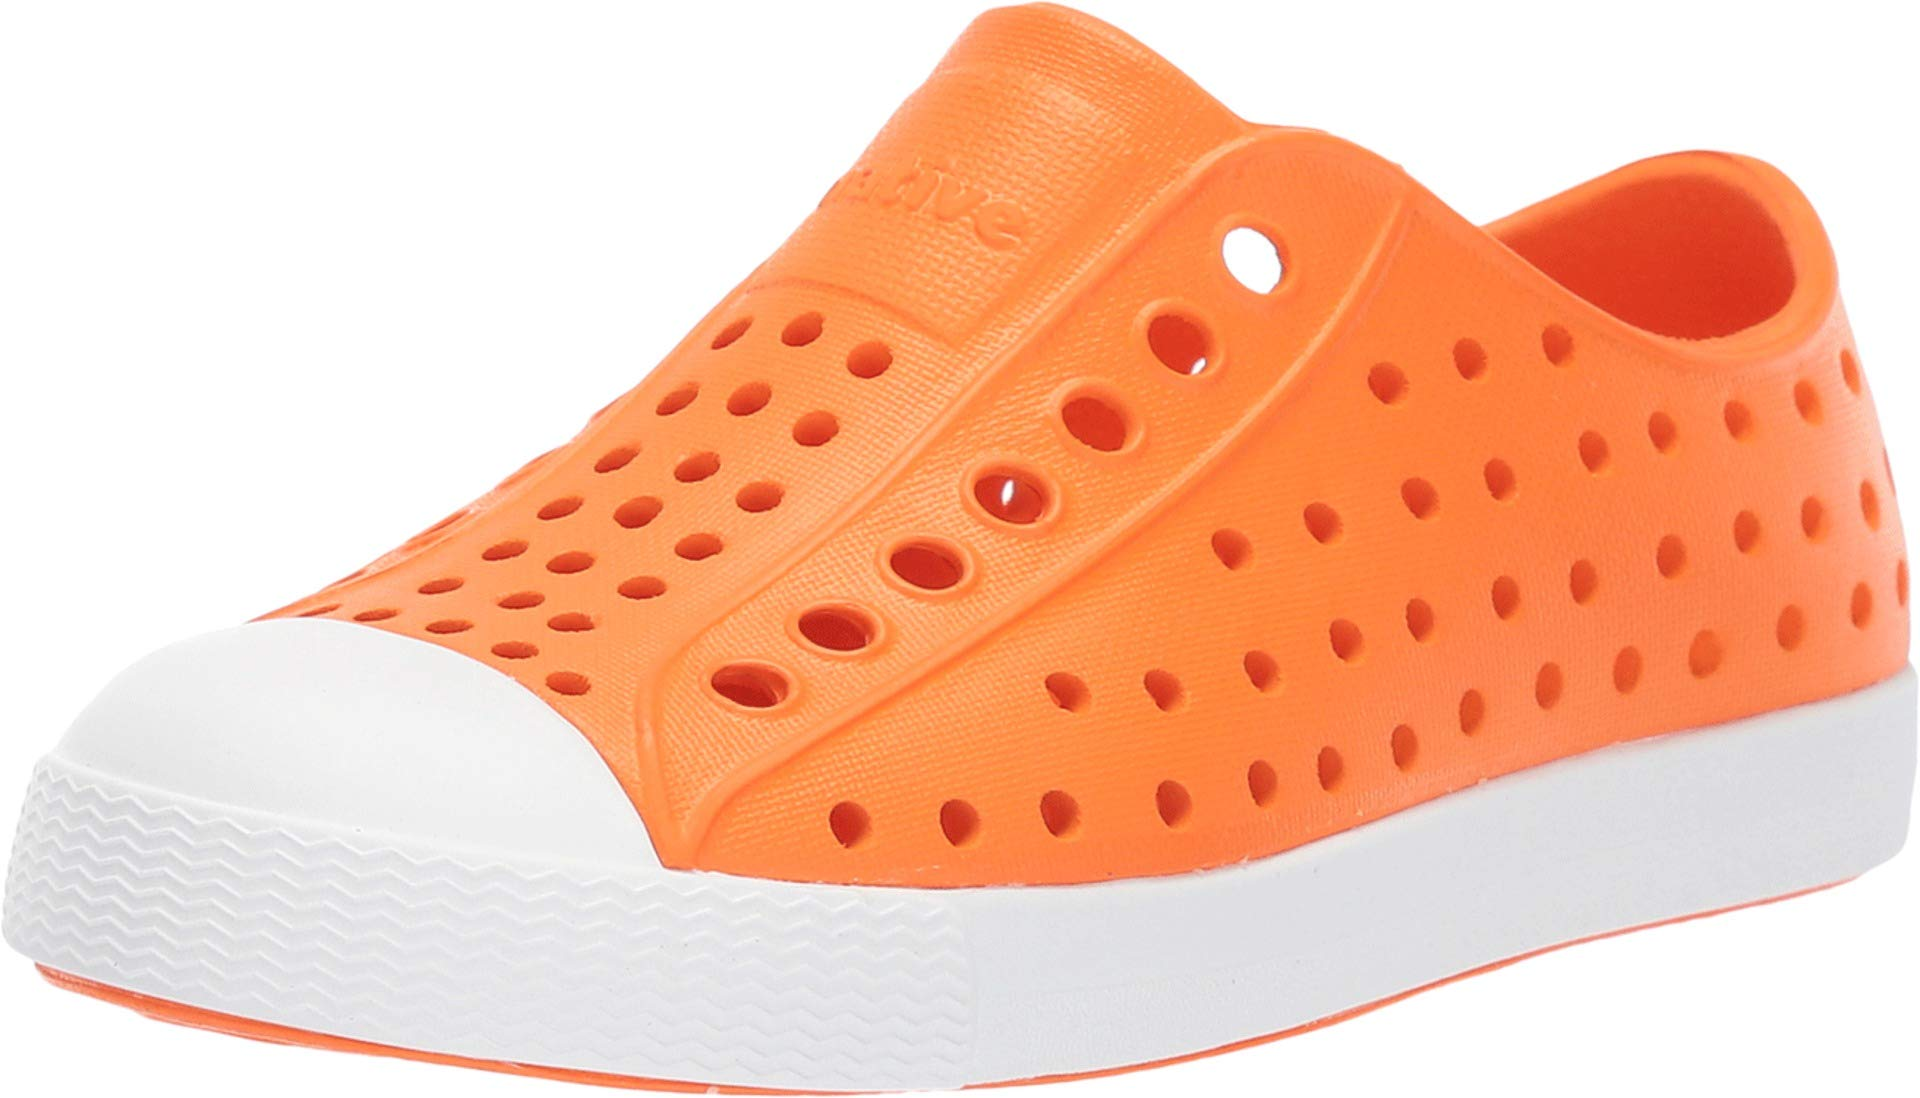 Native Kids Shoes Unisex Jefferson (Toddler/Little Kid) City Orange/Shell White 5 M US Toddler by Native